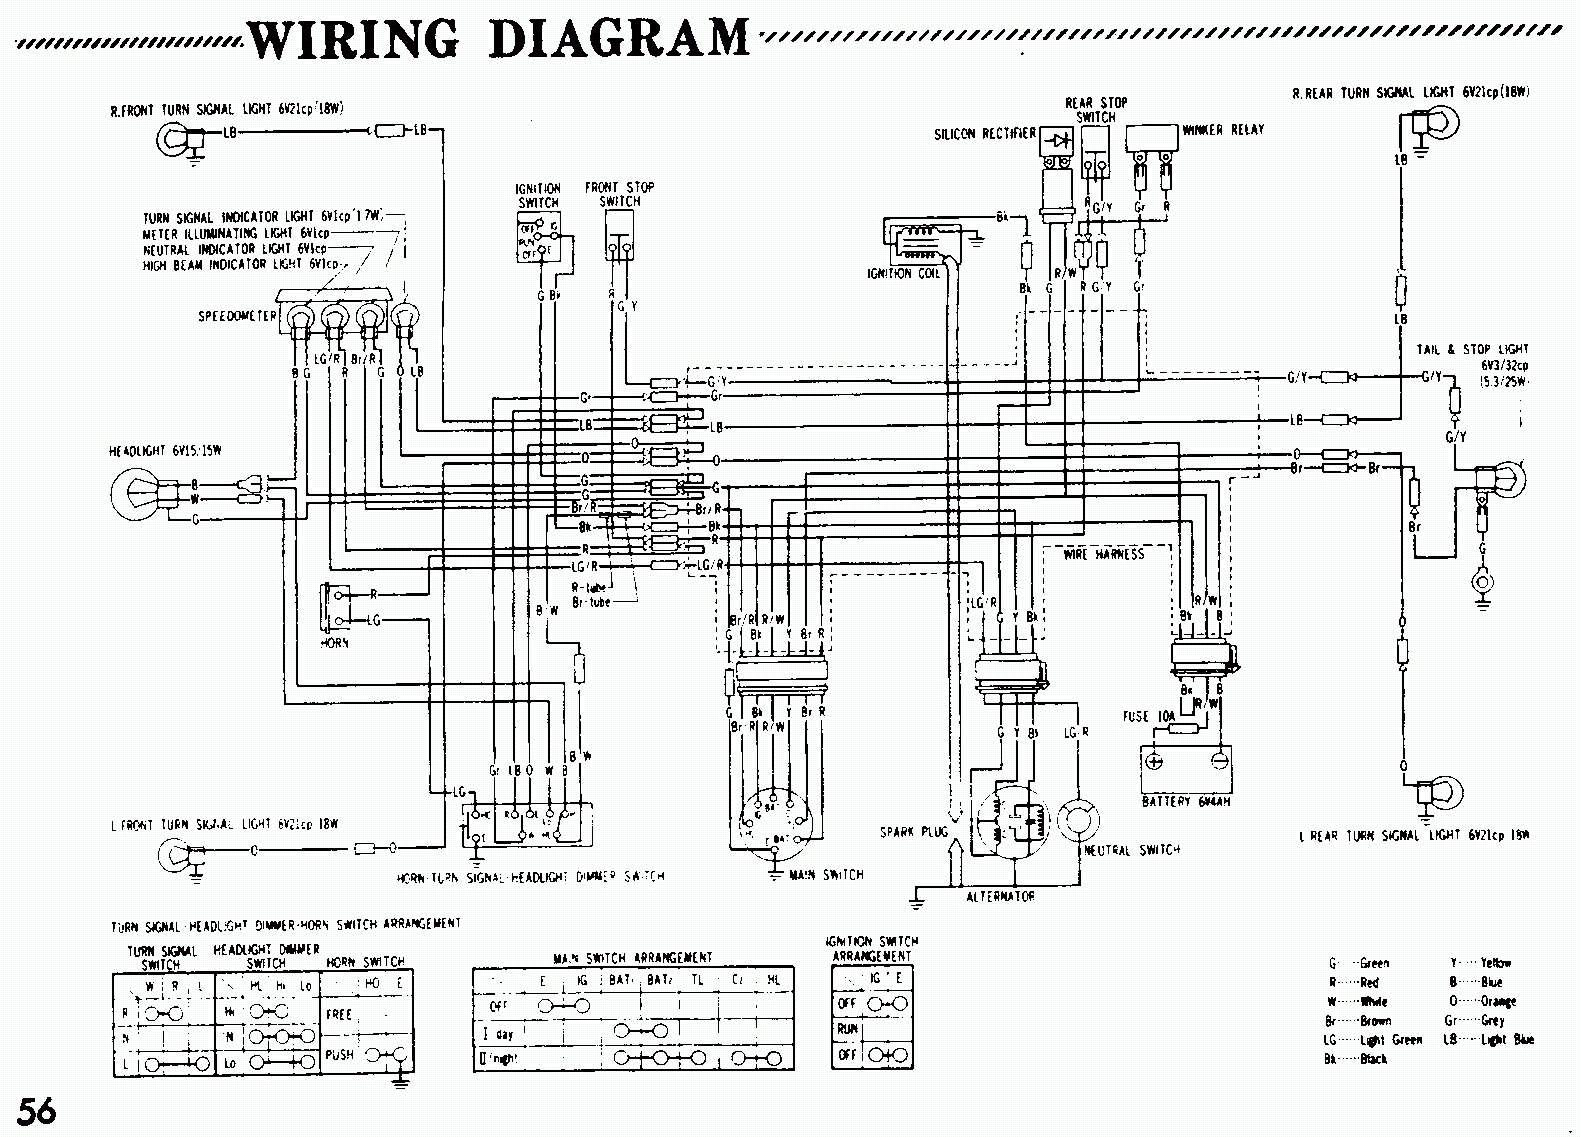 tbolt usa tech database tbolt usa llc rh tboltusa com 85 atc 70 wiring diagram